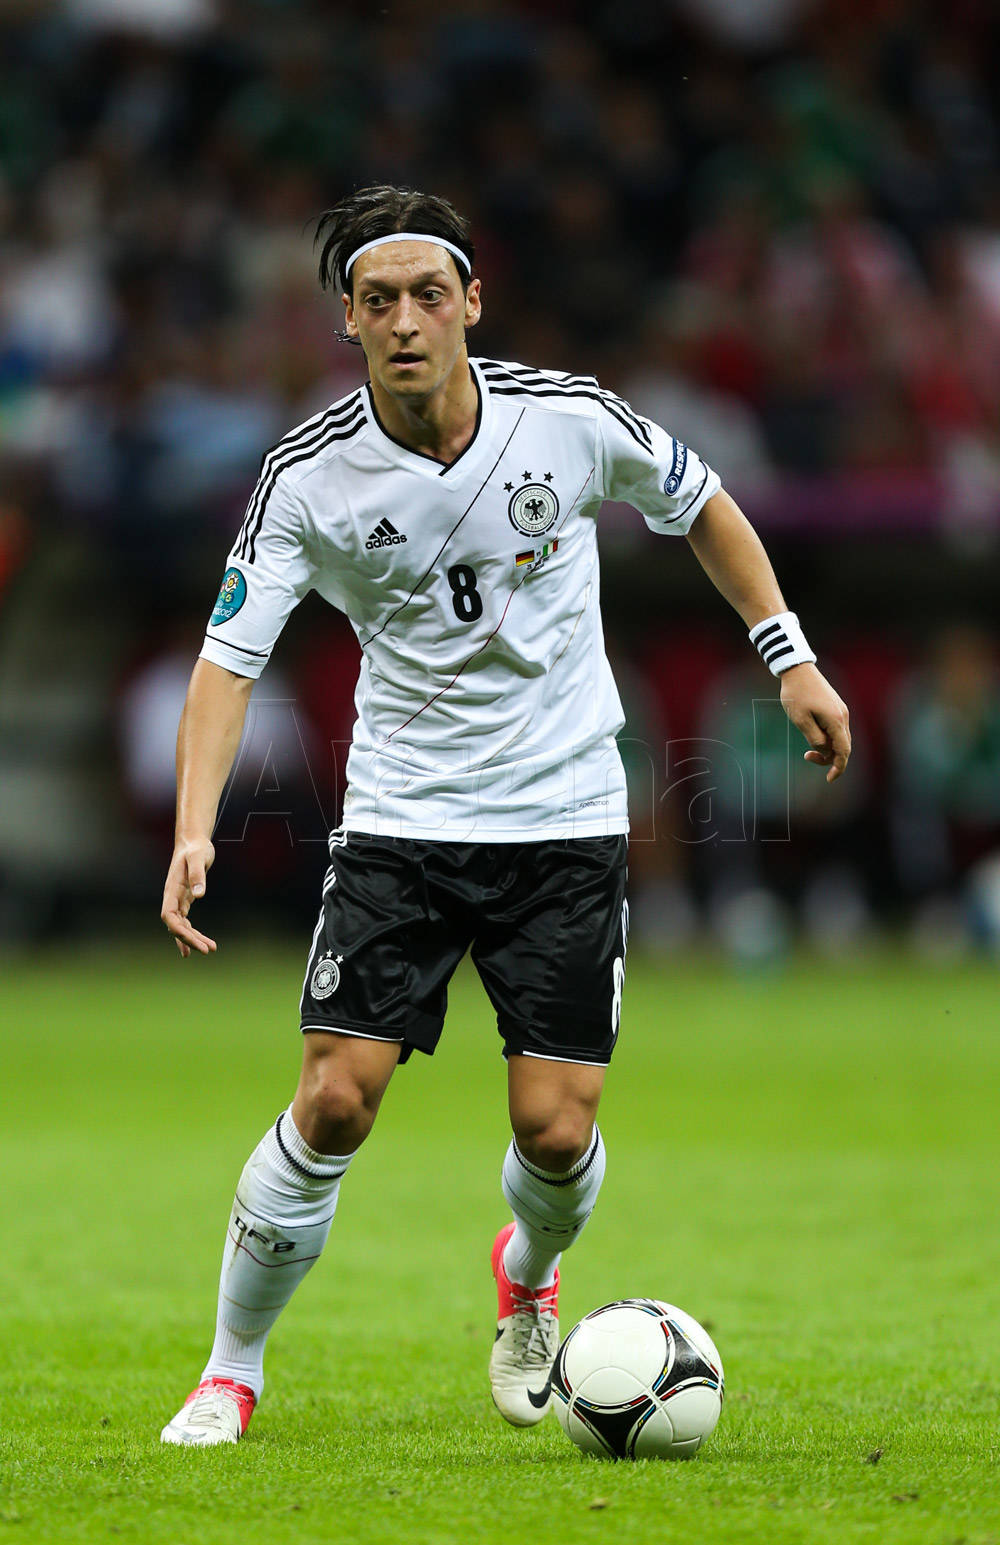 Picture special: New signing Mesut Ozil | News | Arsenal.com